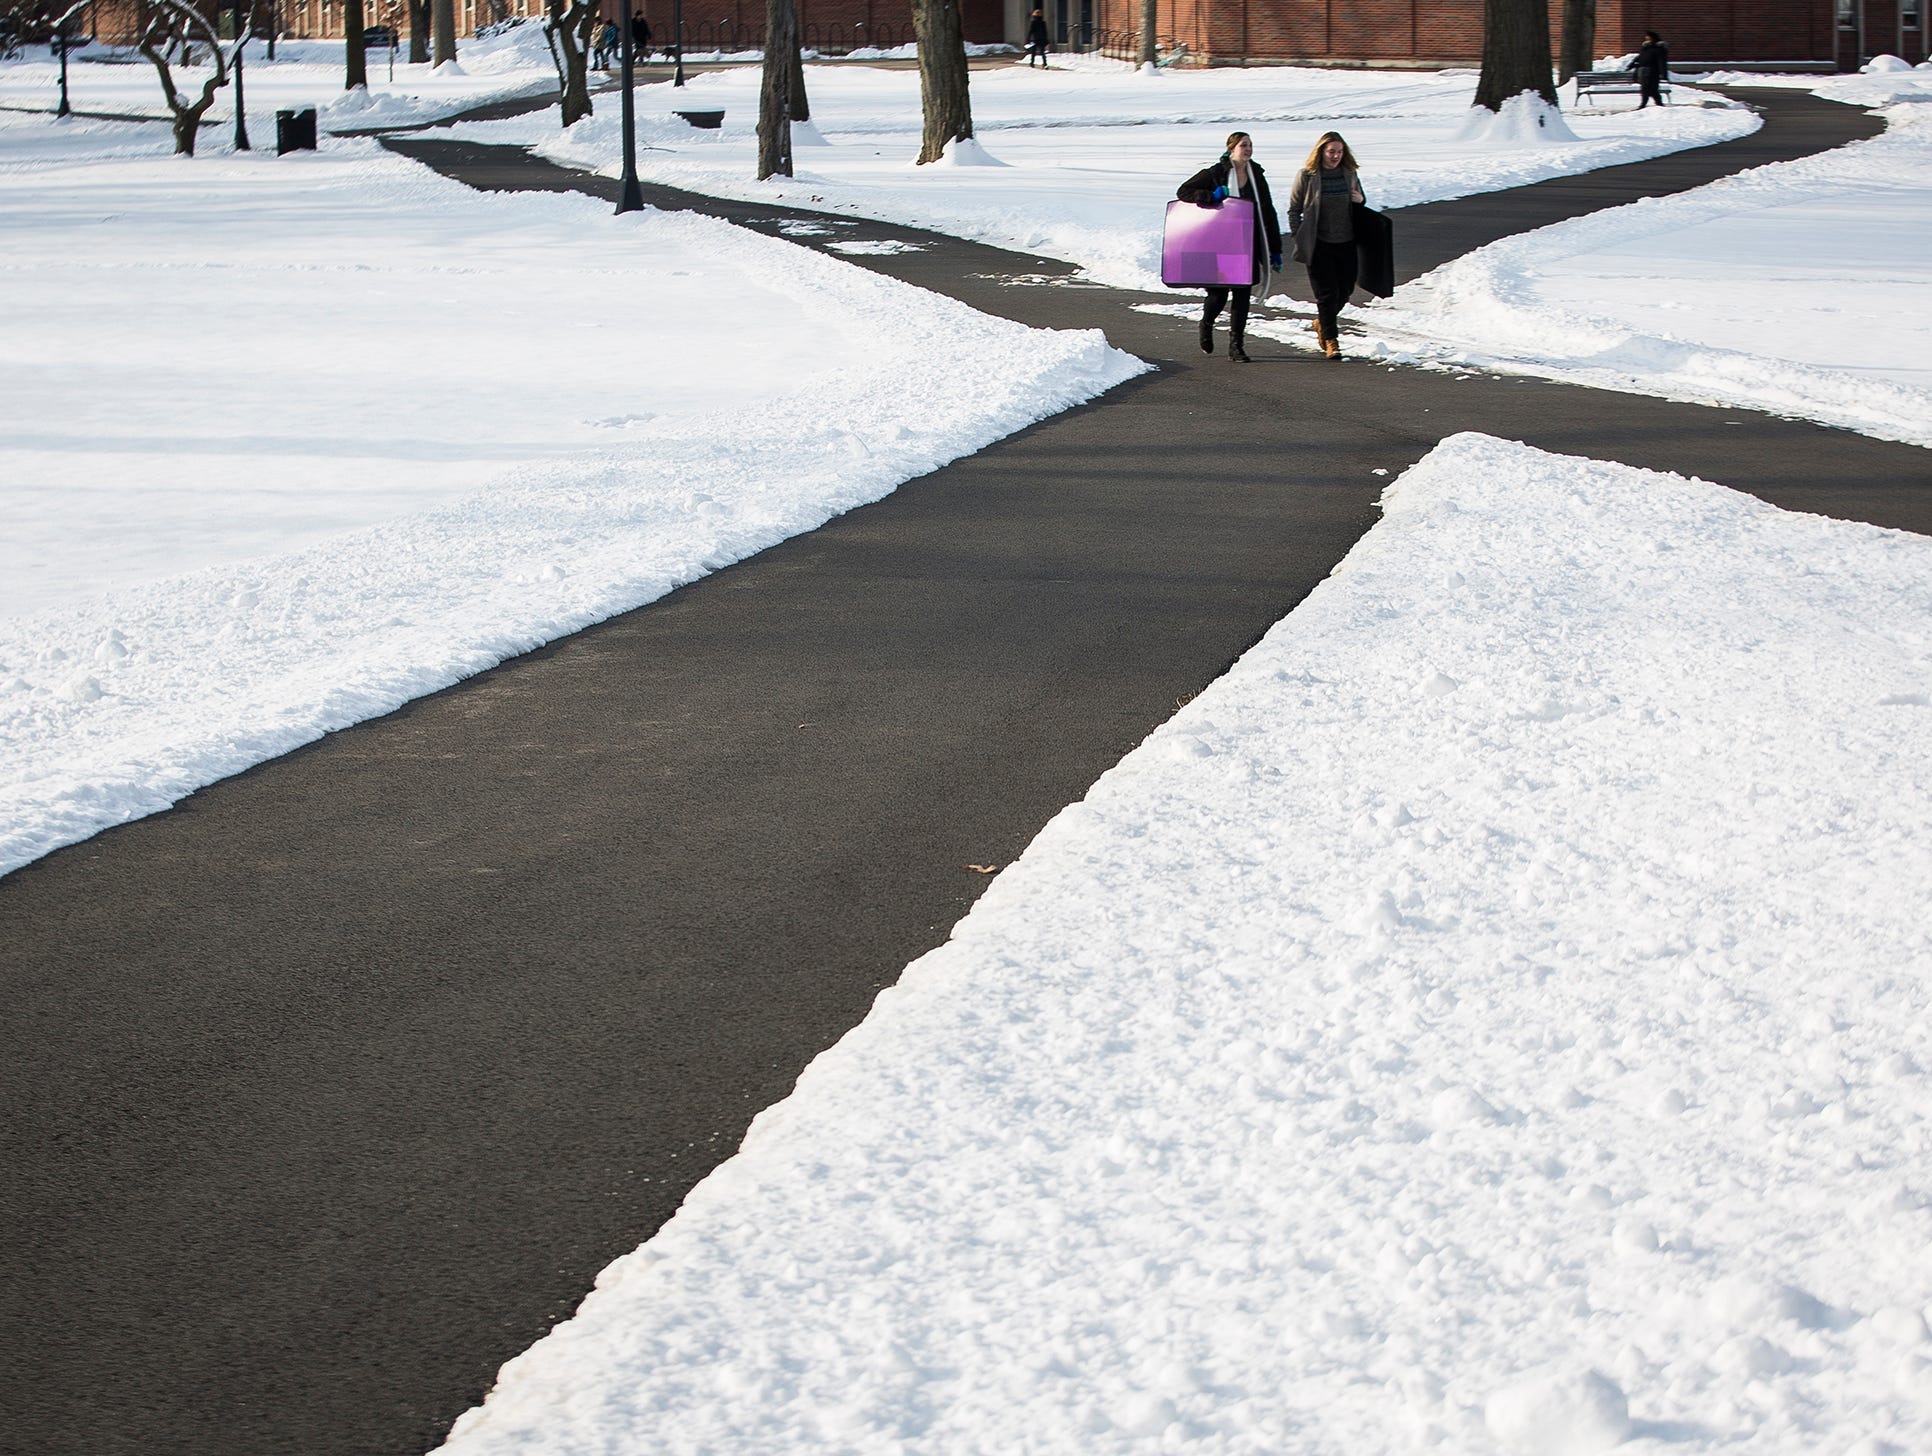 Snow blanketed Delaware County Thursday night causing school closings Friday.